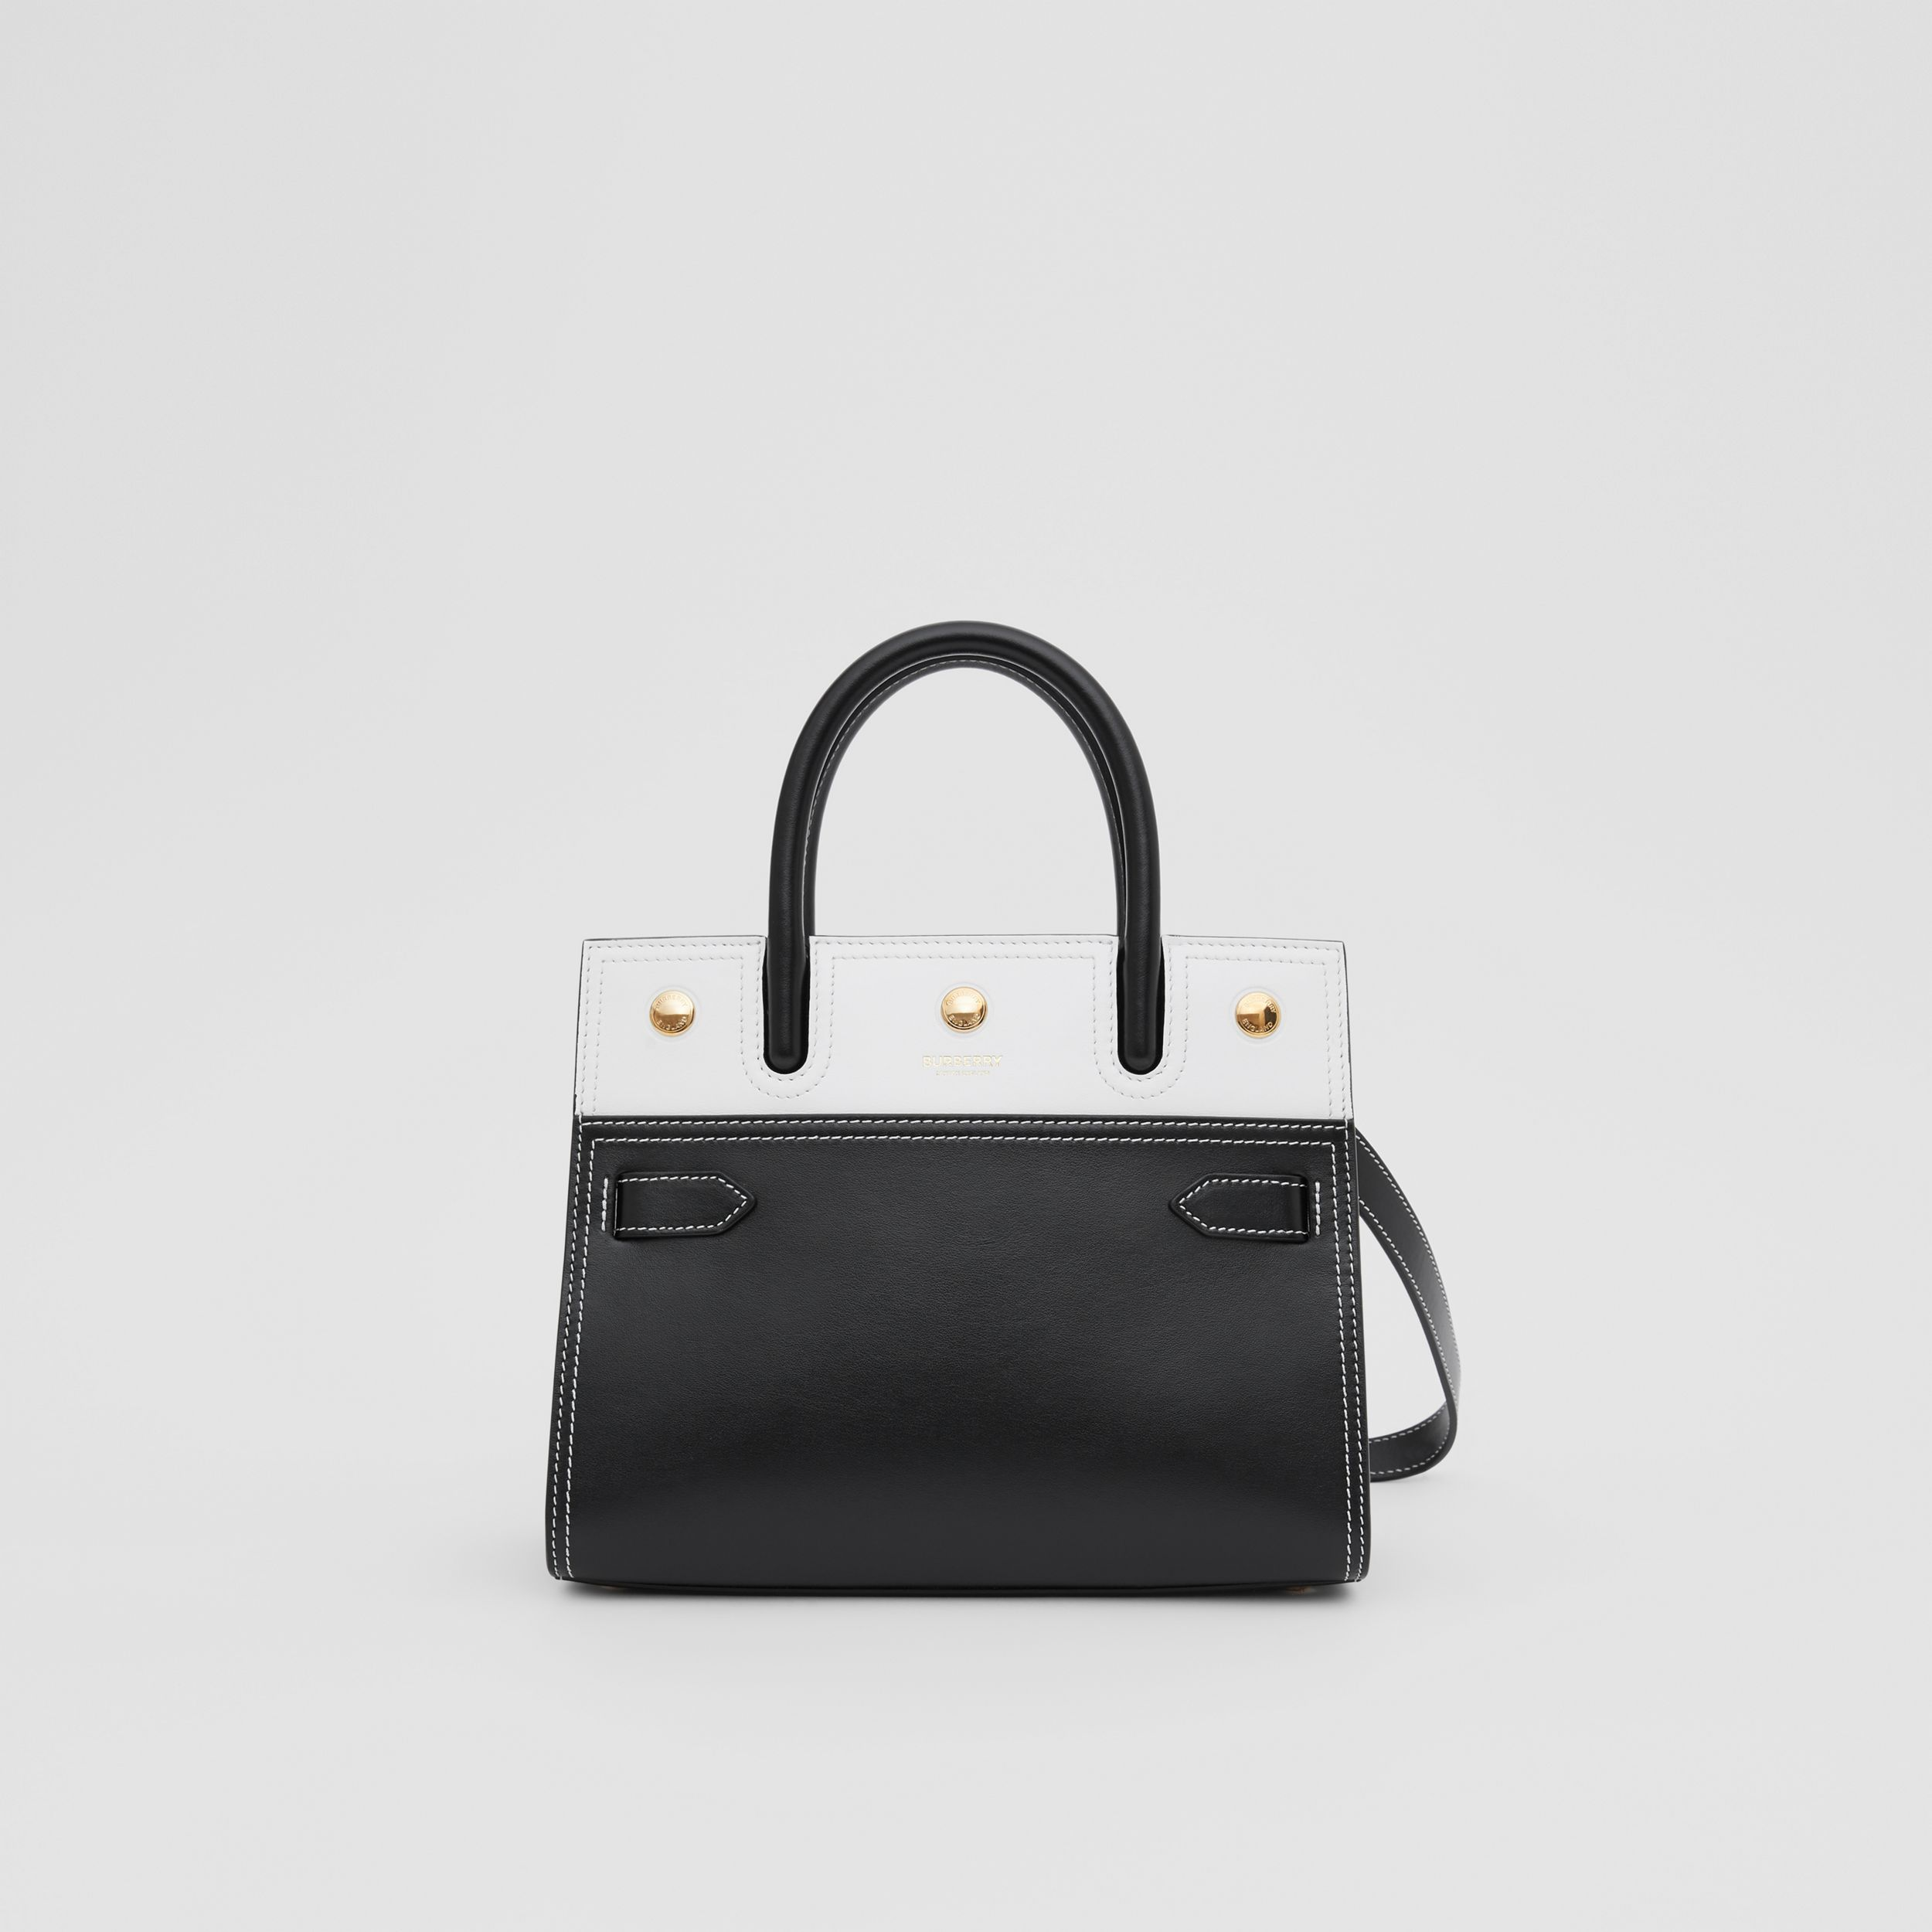 Mini Leather Two-handle Title Bag in Black/white - Women | Burberry Hong Kong S.A.R. - 1